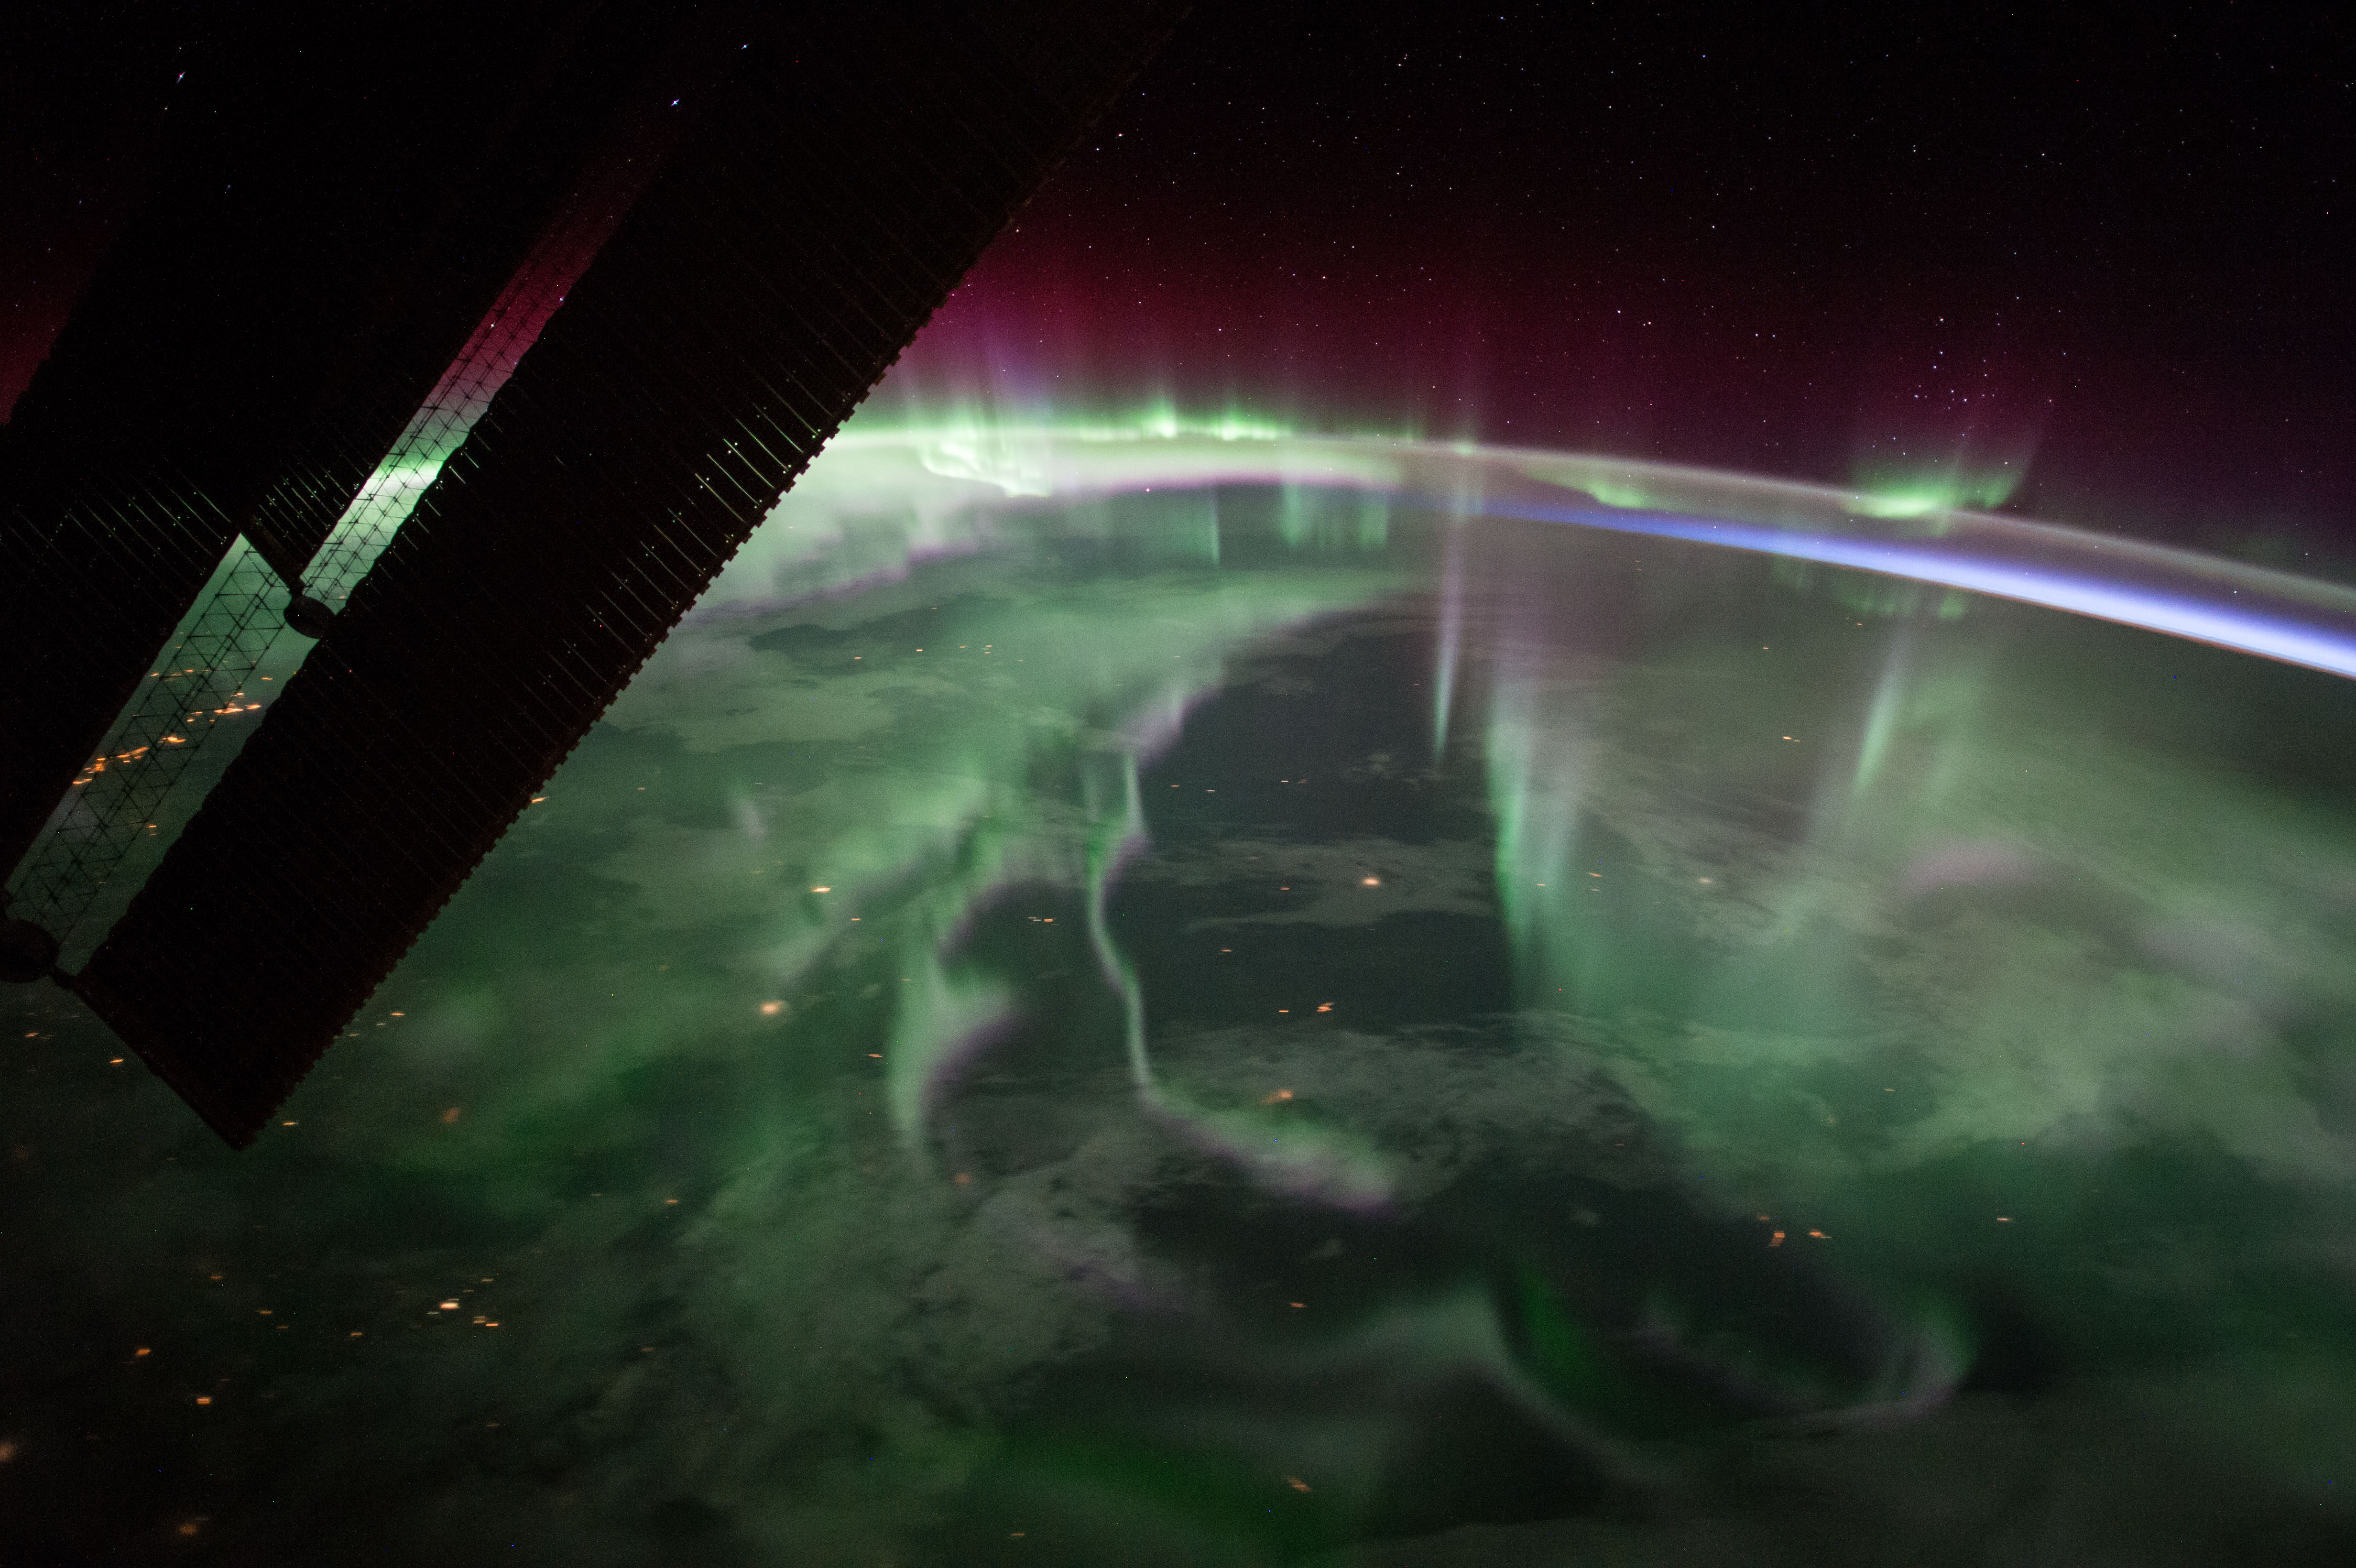 The aurora borealis from Jupiter